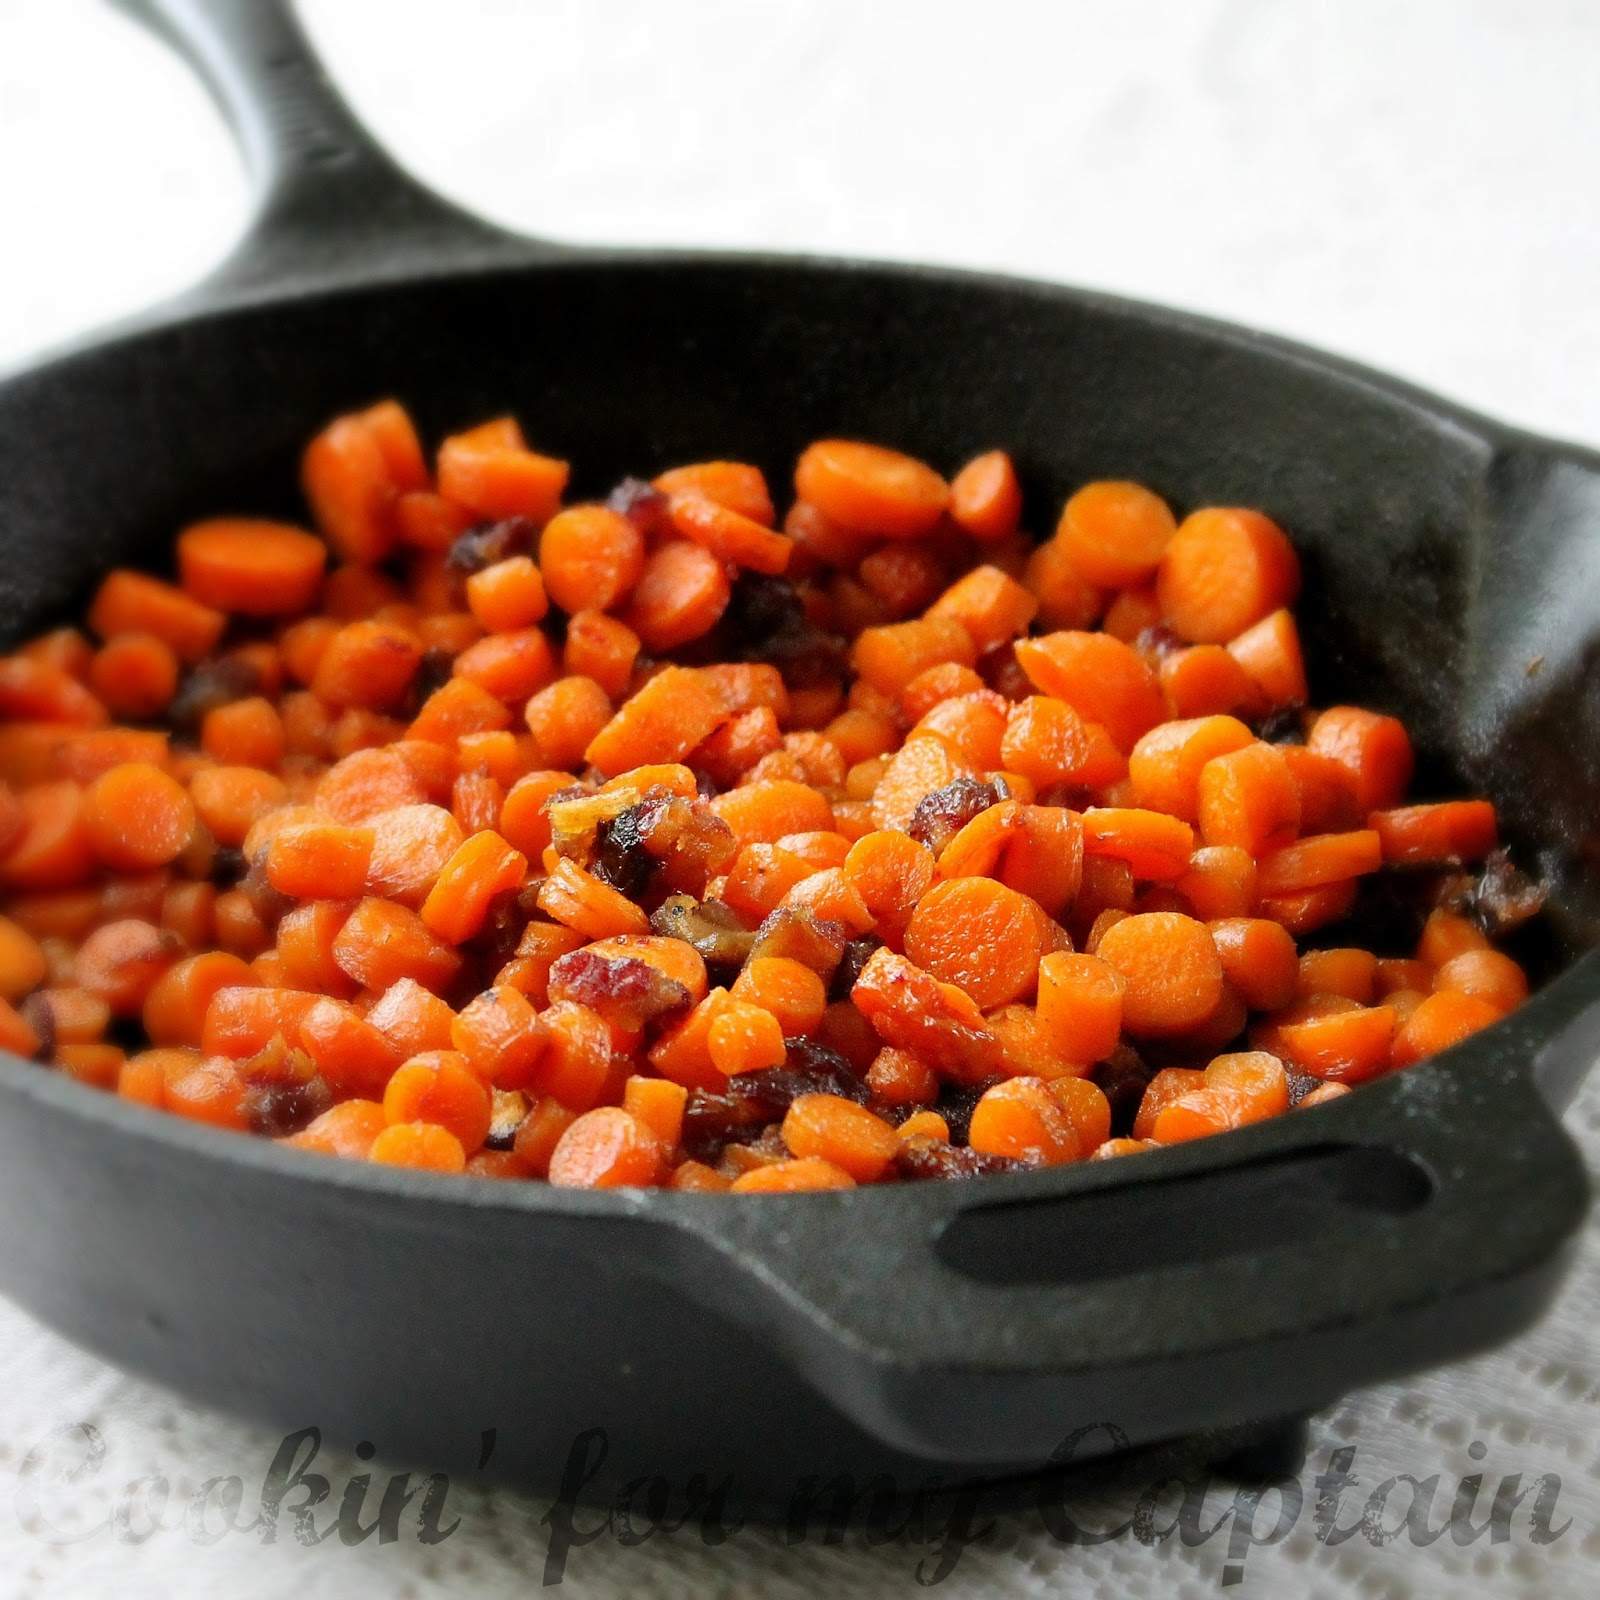 Candied Carrots [P]